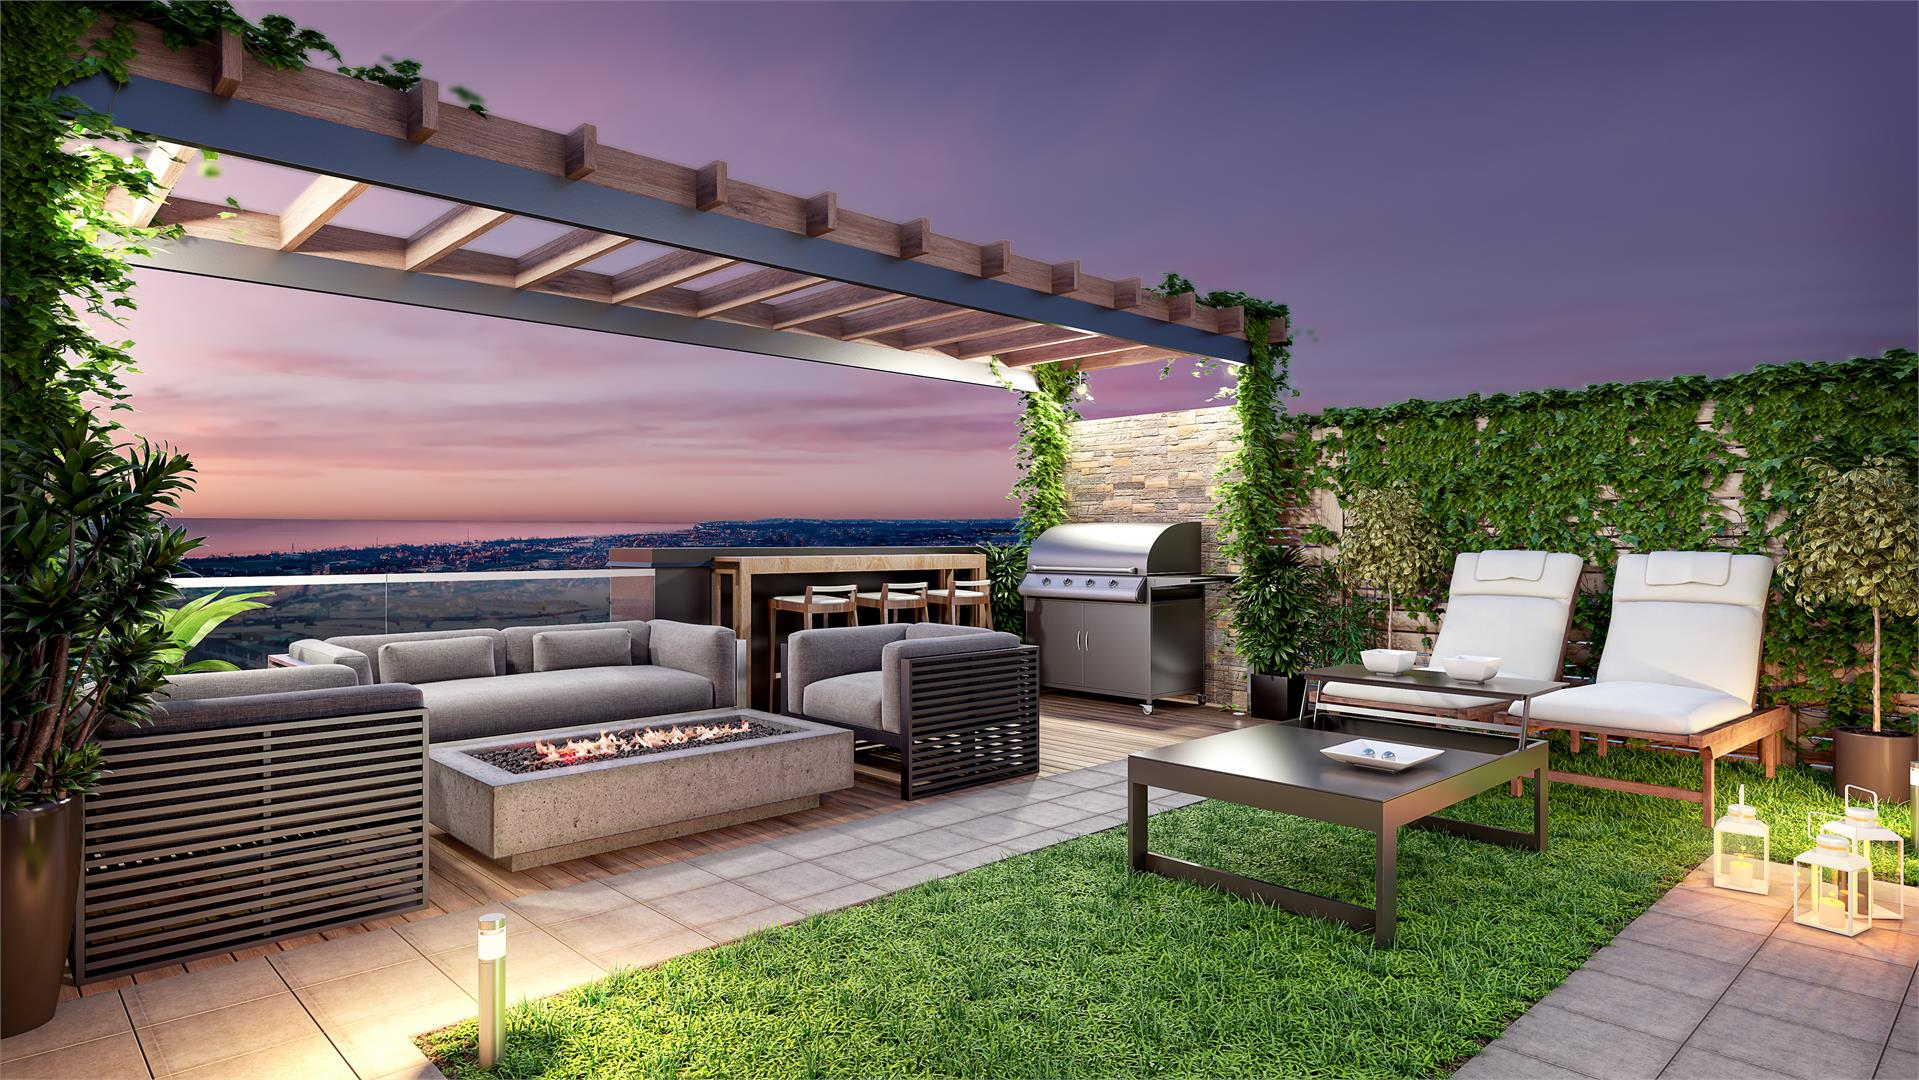 Rendering of Glendor Towns rooftop terrace at night.